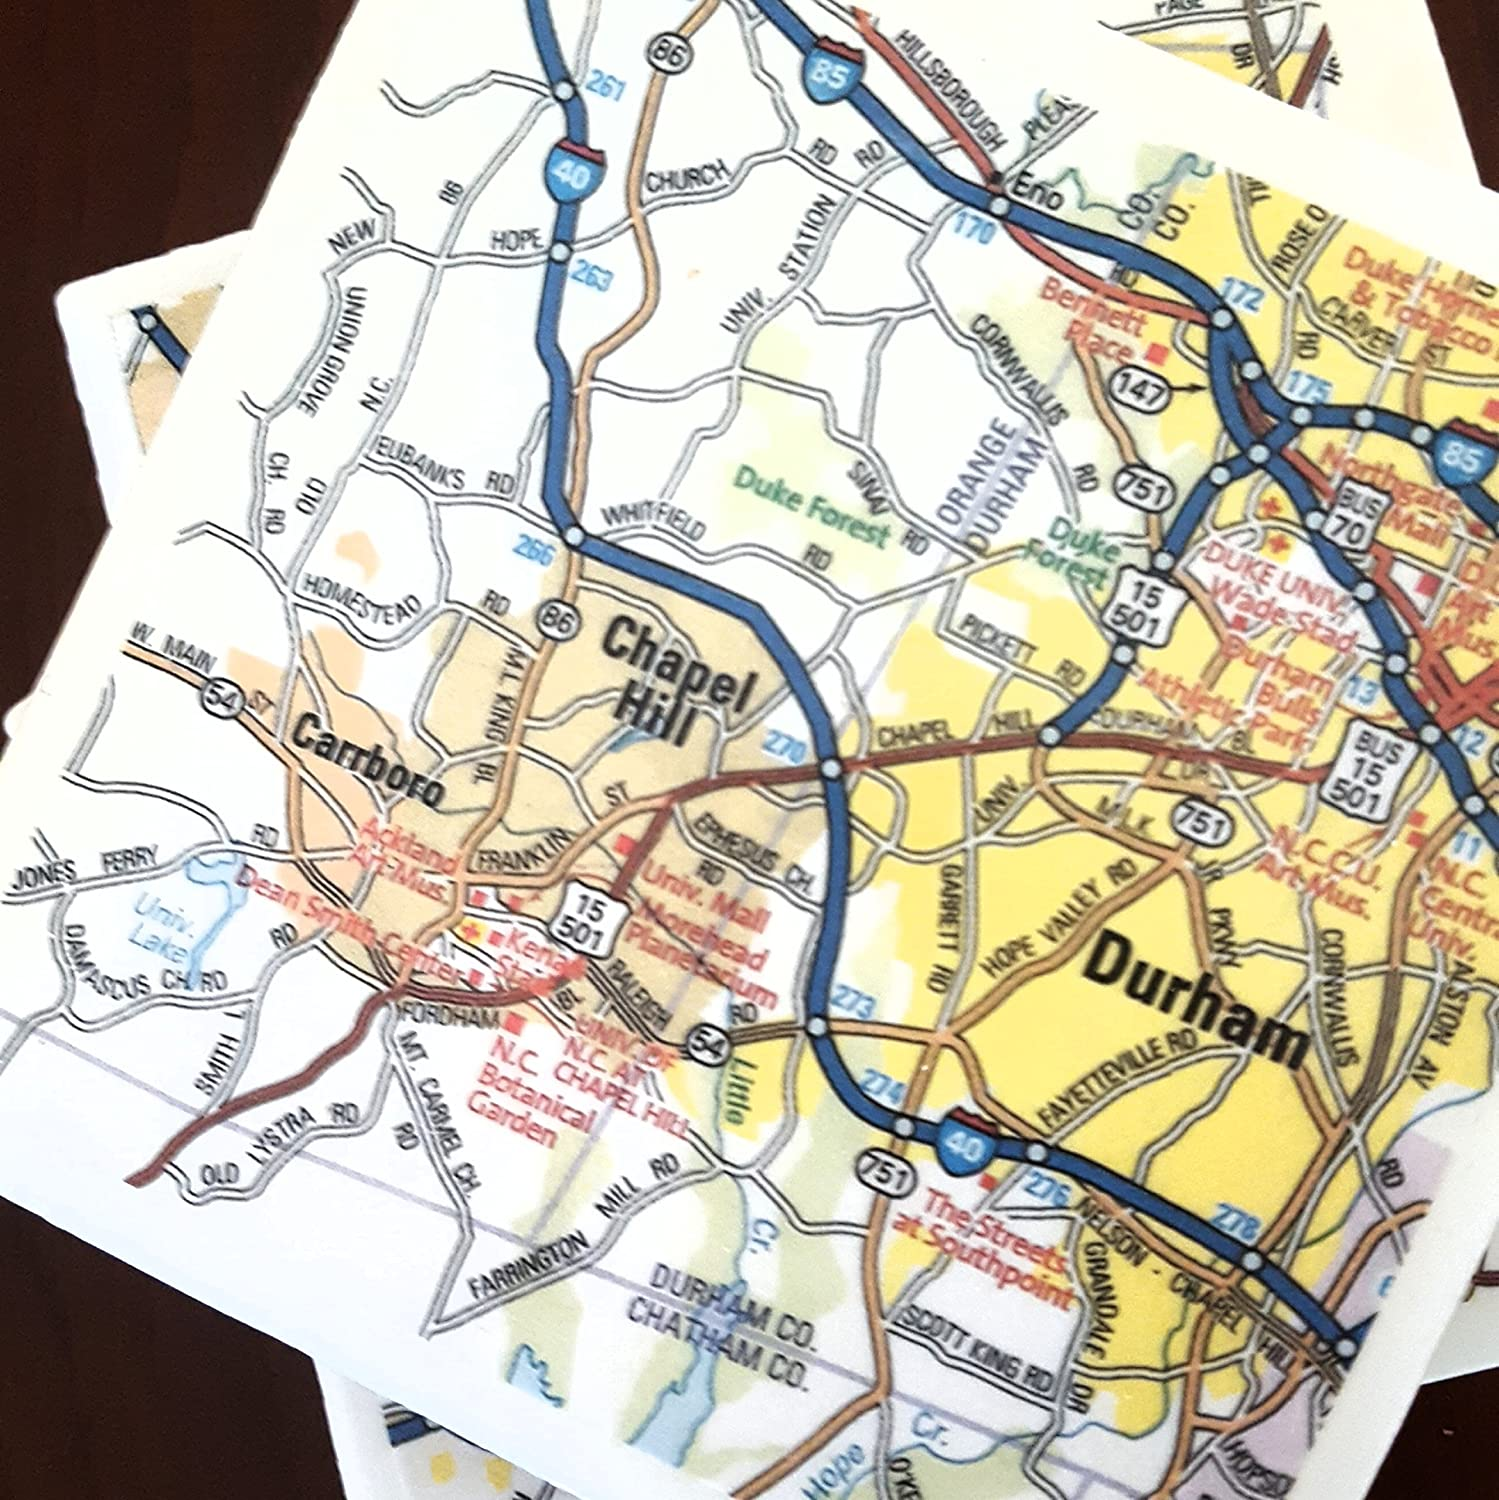 Amazon.com: Raleigh, Durham Map Coasters, Set of 4 ... on geofence map, world clock map, dvb-t map, cdma map, xml map, linux map, tetra map, android map, isp map,